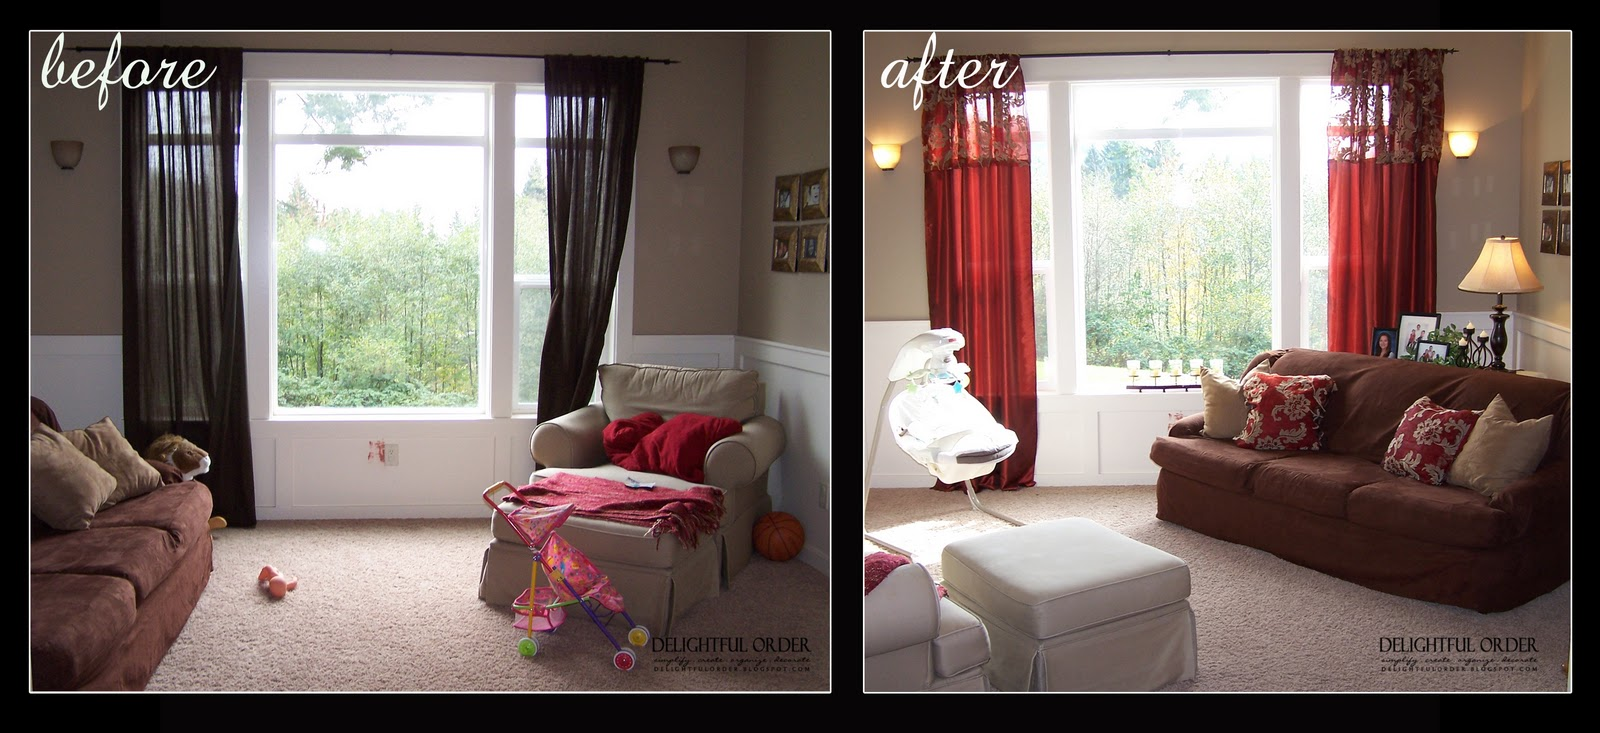 Delightful order before and afters for Living room makeovers